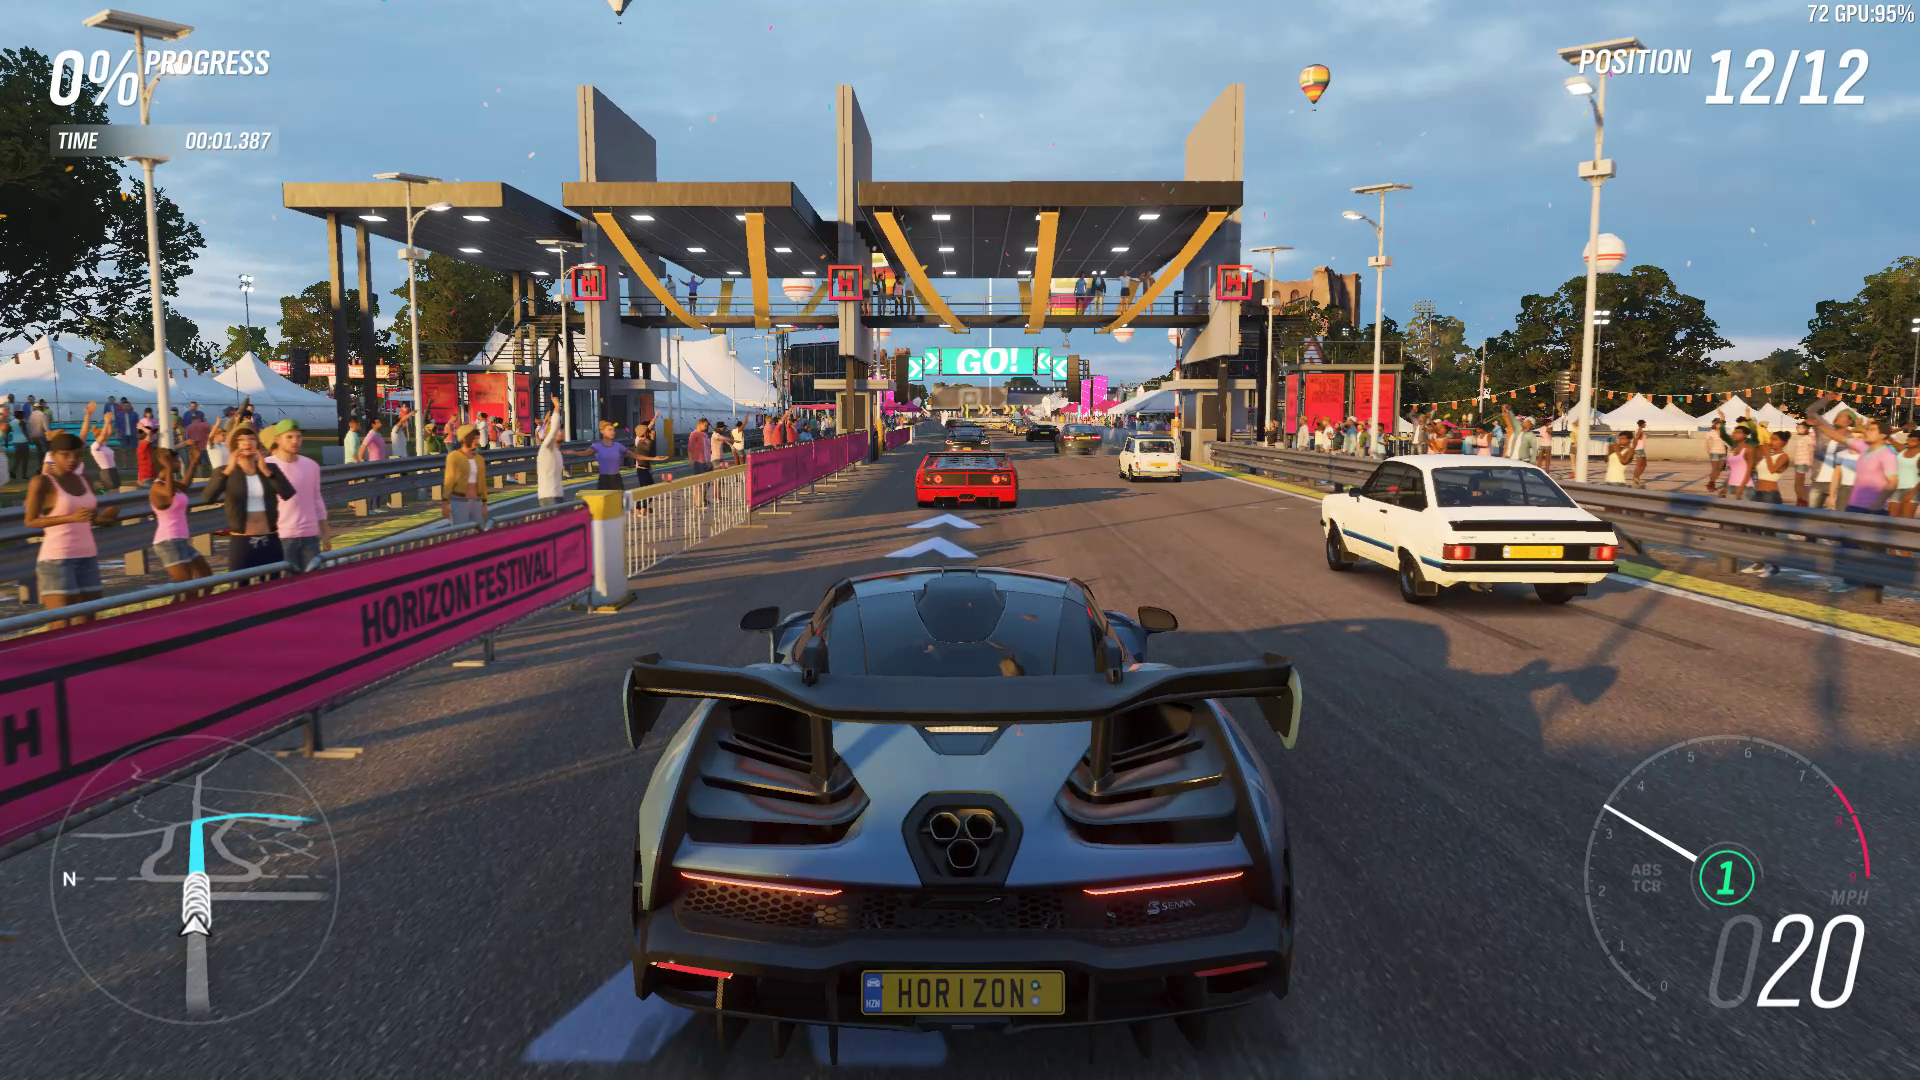 Forza Horizon 4 Pc Performance Review A Luxurious Ride